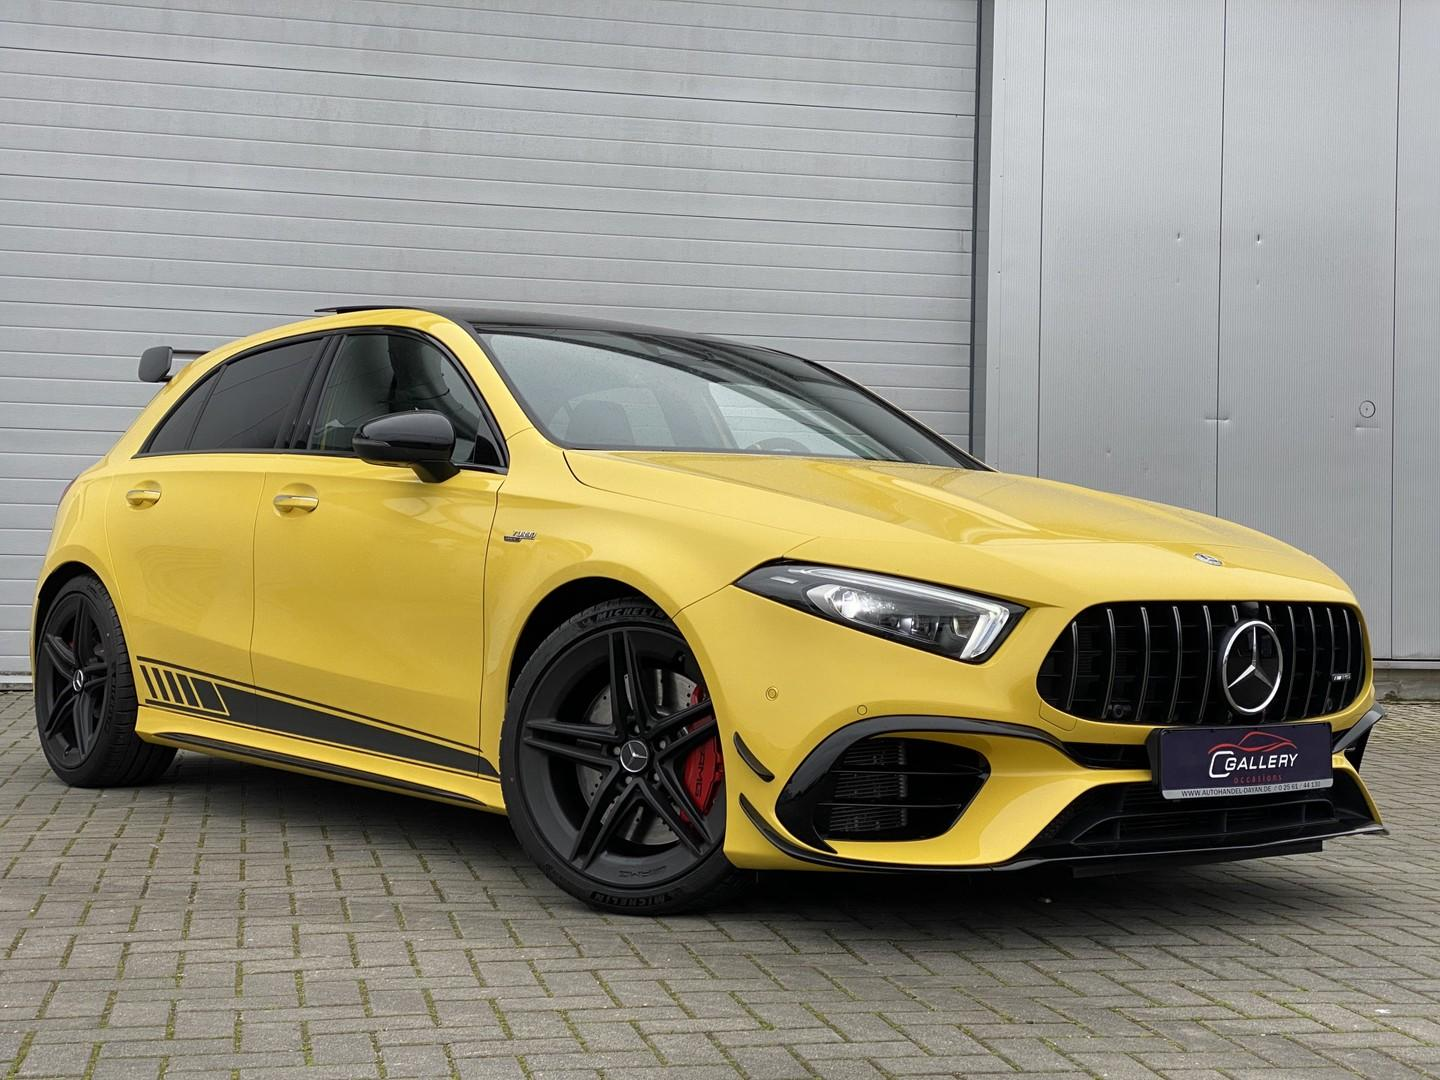 Mercedes-benz A-klasse A45 s amg 4matic+ edition 1